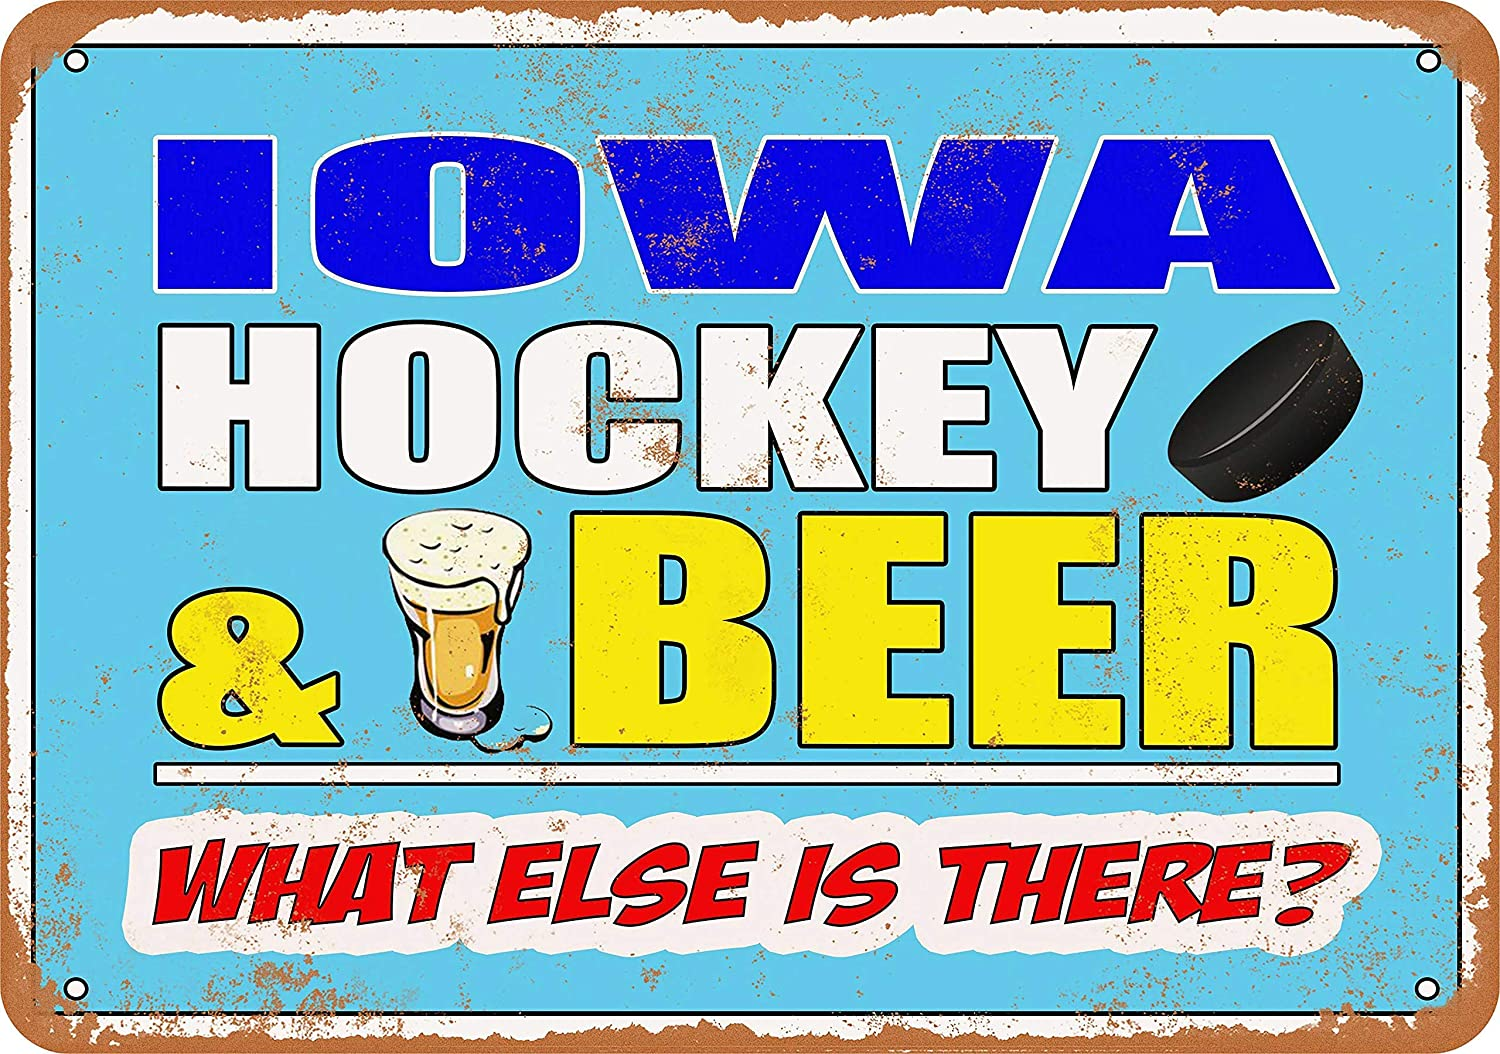 Iowa Hockey and Beer Vintage Look 8x12 Inches Metal Tin Sign Retro - Wall Decor Plaque Poster